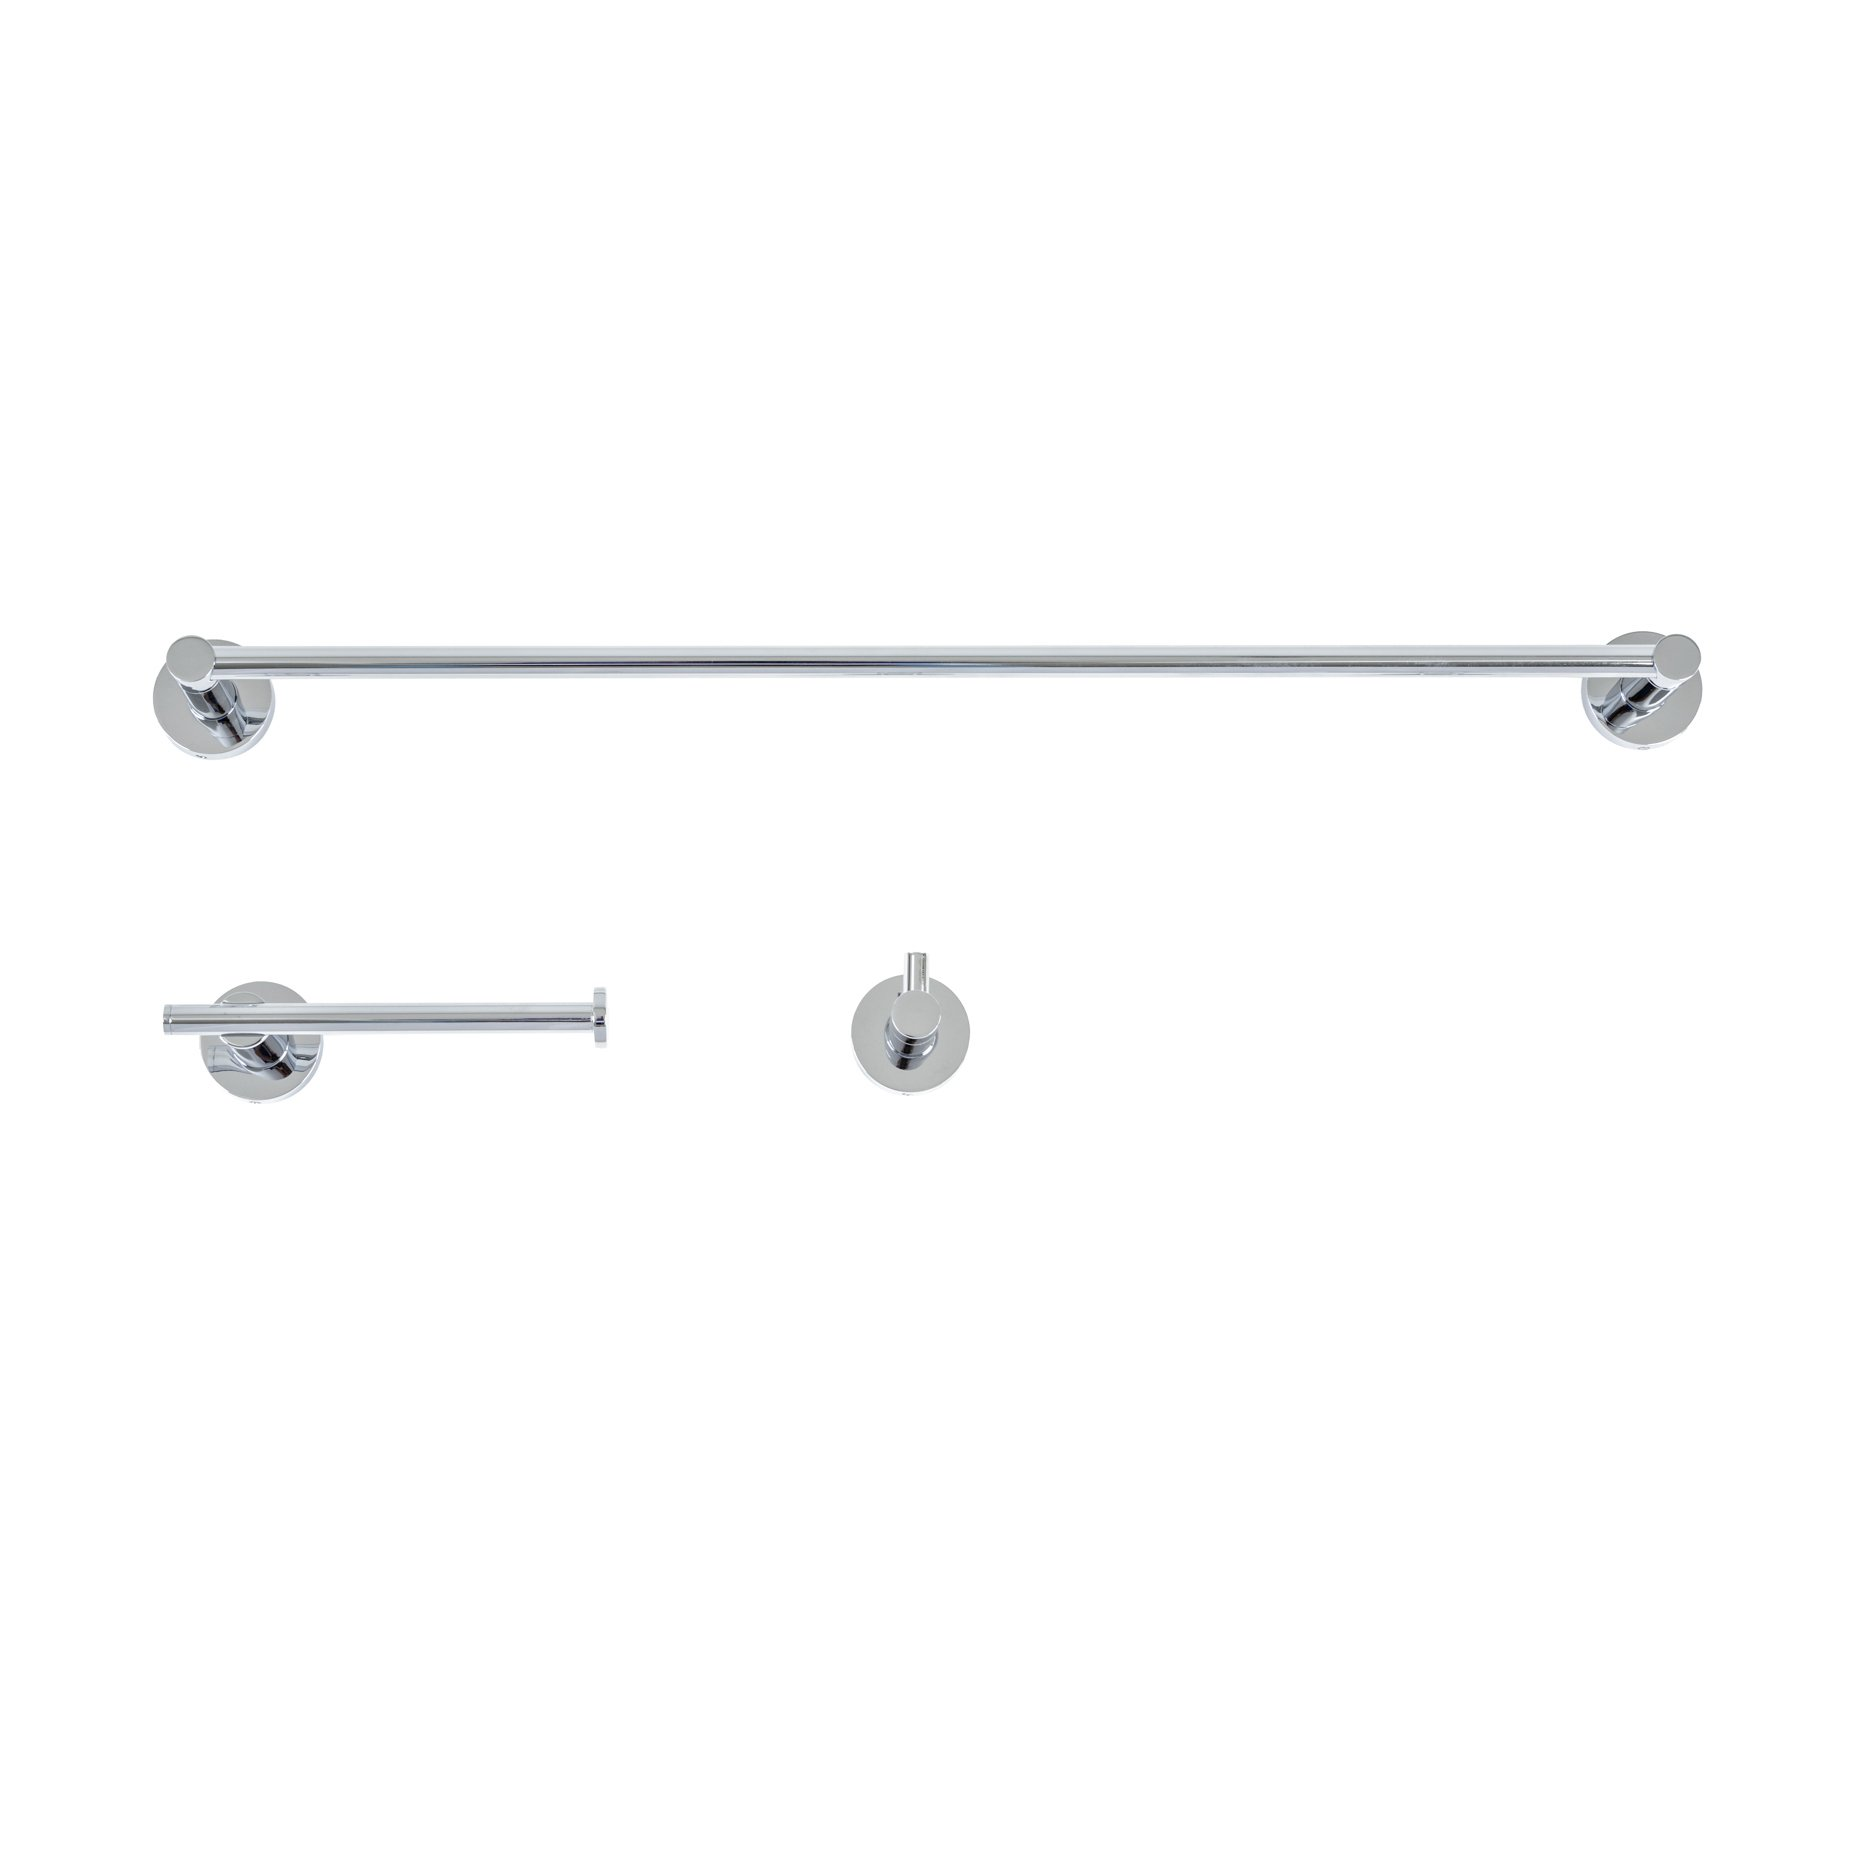 Italia VE3SET Venezia Bathroom Accessory Set (3 Piece), Polished Chrome